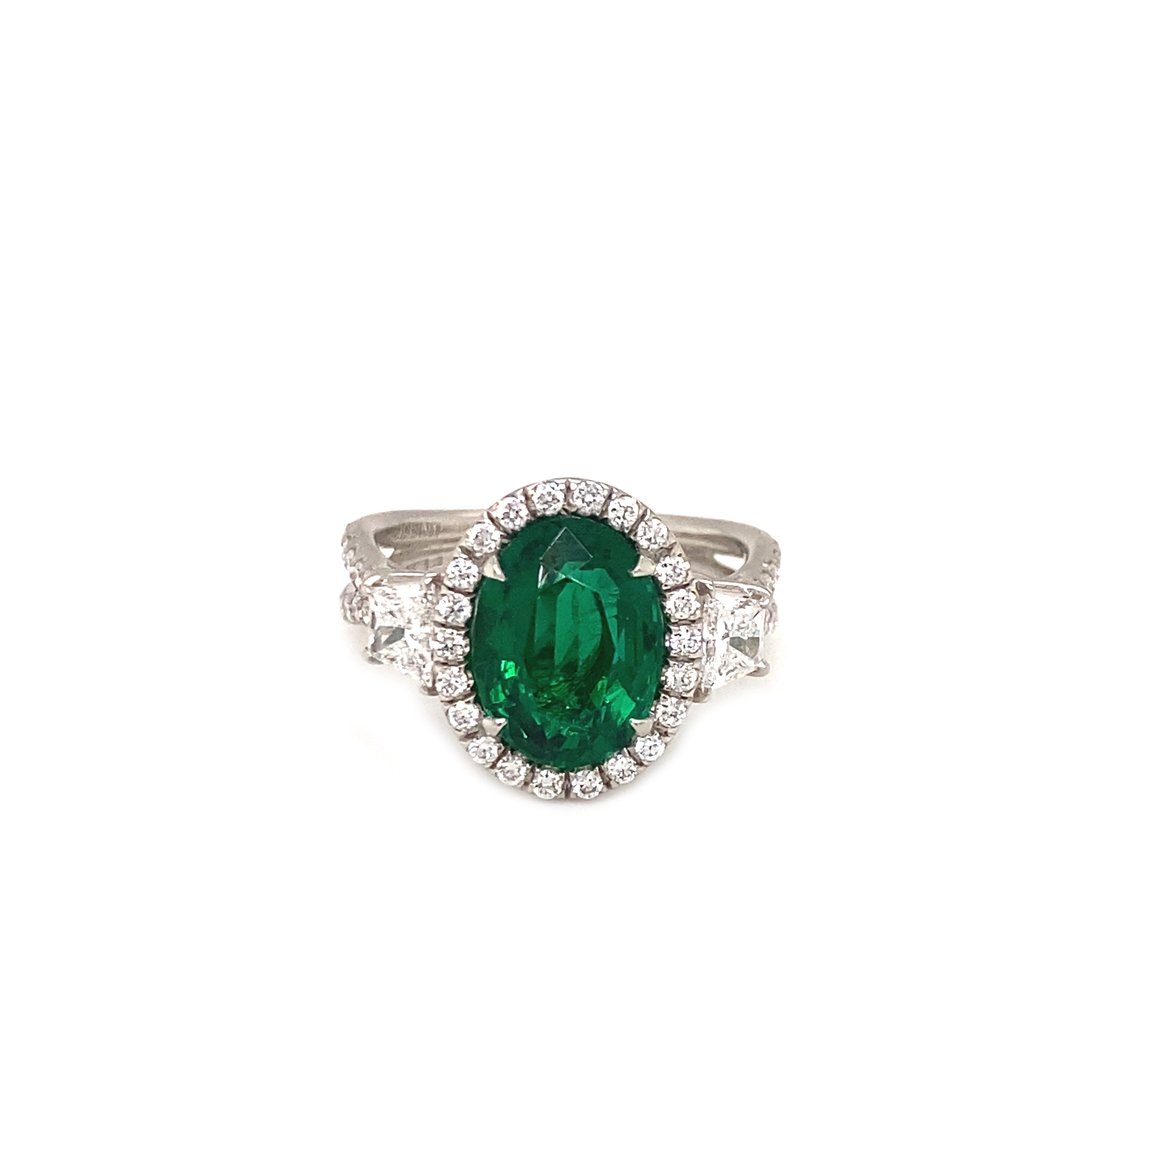 Oval Center Emerald Ring